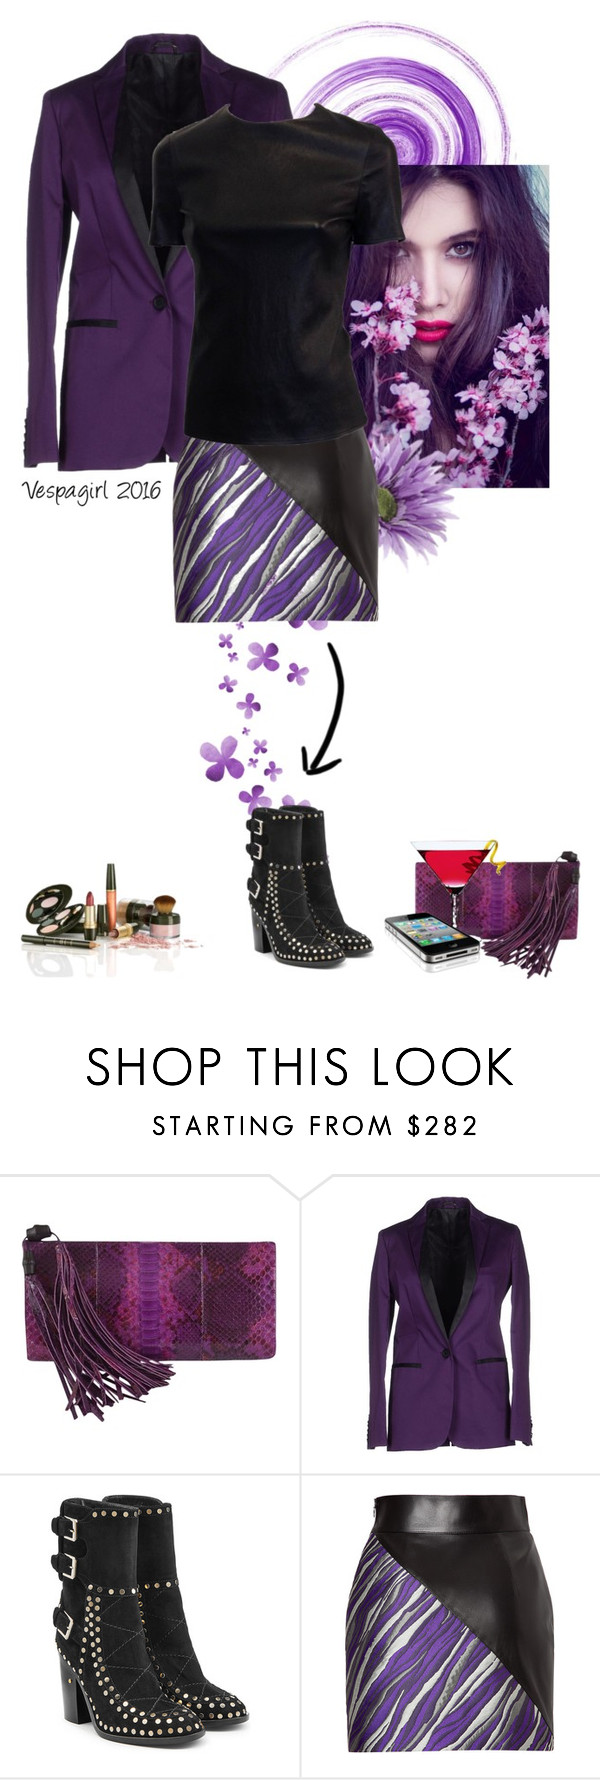 """Purple Reign"" by vespagirl ❤ liked on Polyvore featuring Gucci, Karl by Karl Lagerfeld, Laurence Dacade, FAUSTO PUGLISI and Forum"